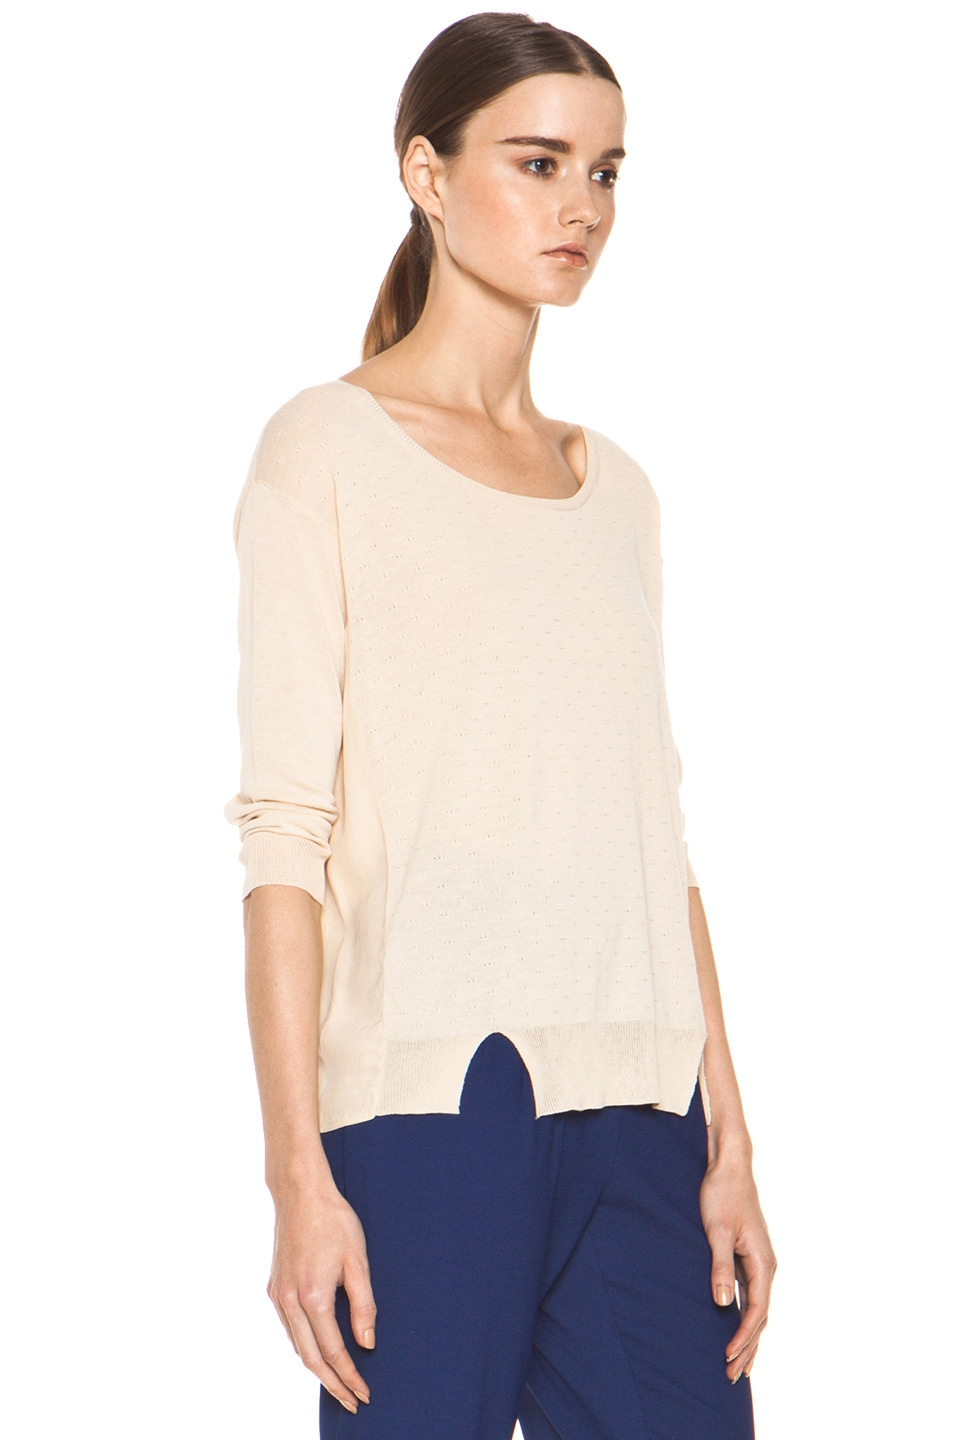 Image 3 of Girl. by Band of Outsiders Malibu Basic Sweater in Nude